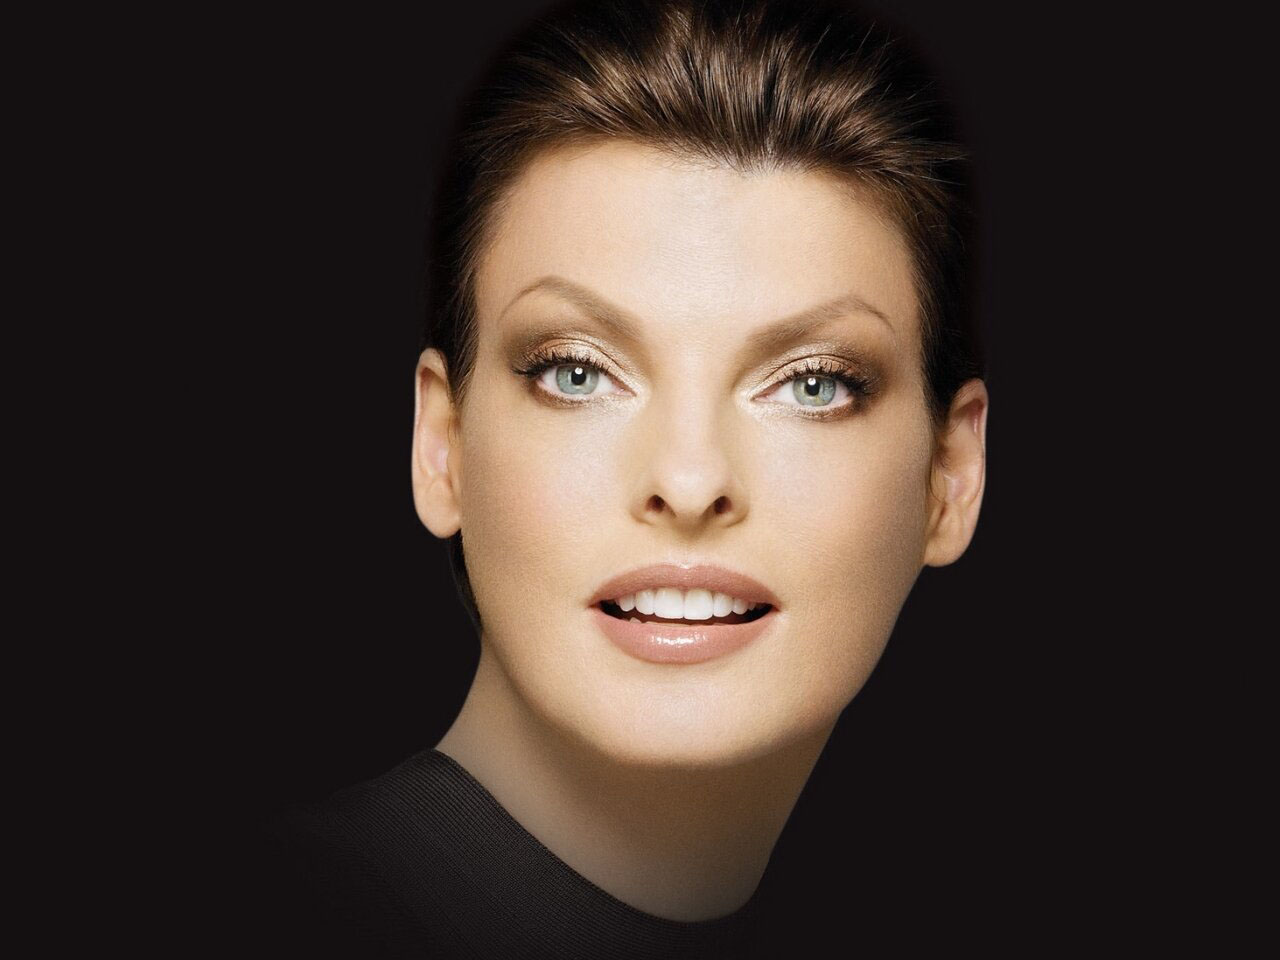 Car Wallpapers For Android Hd 13 Linda Evangelista Hd Wallpapers Download